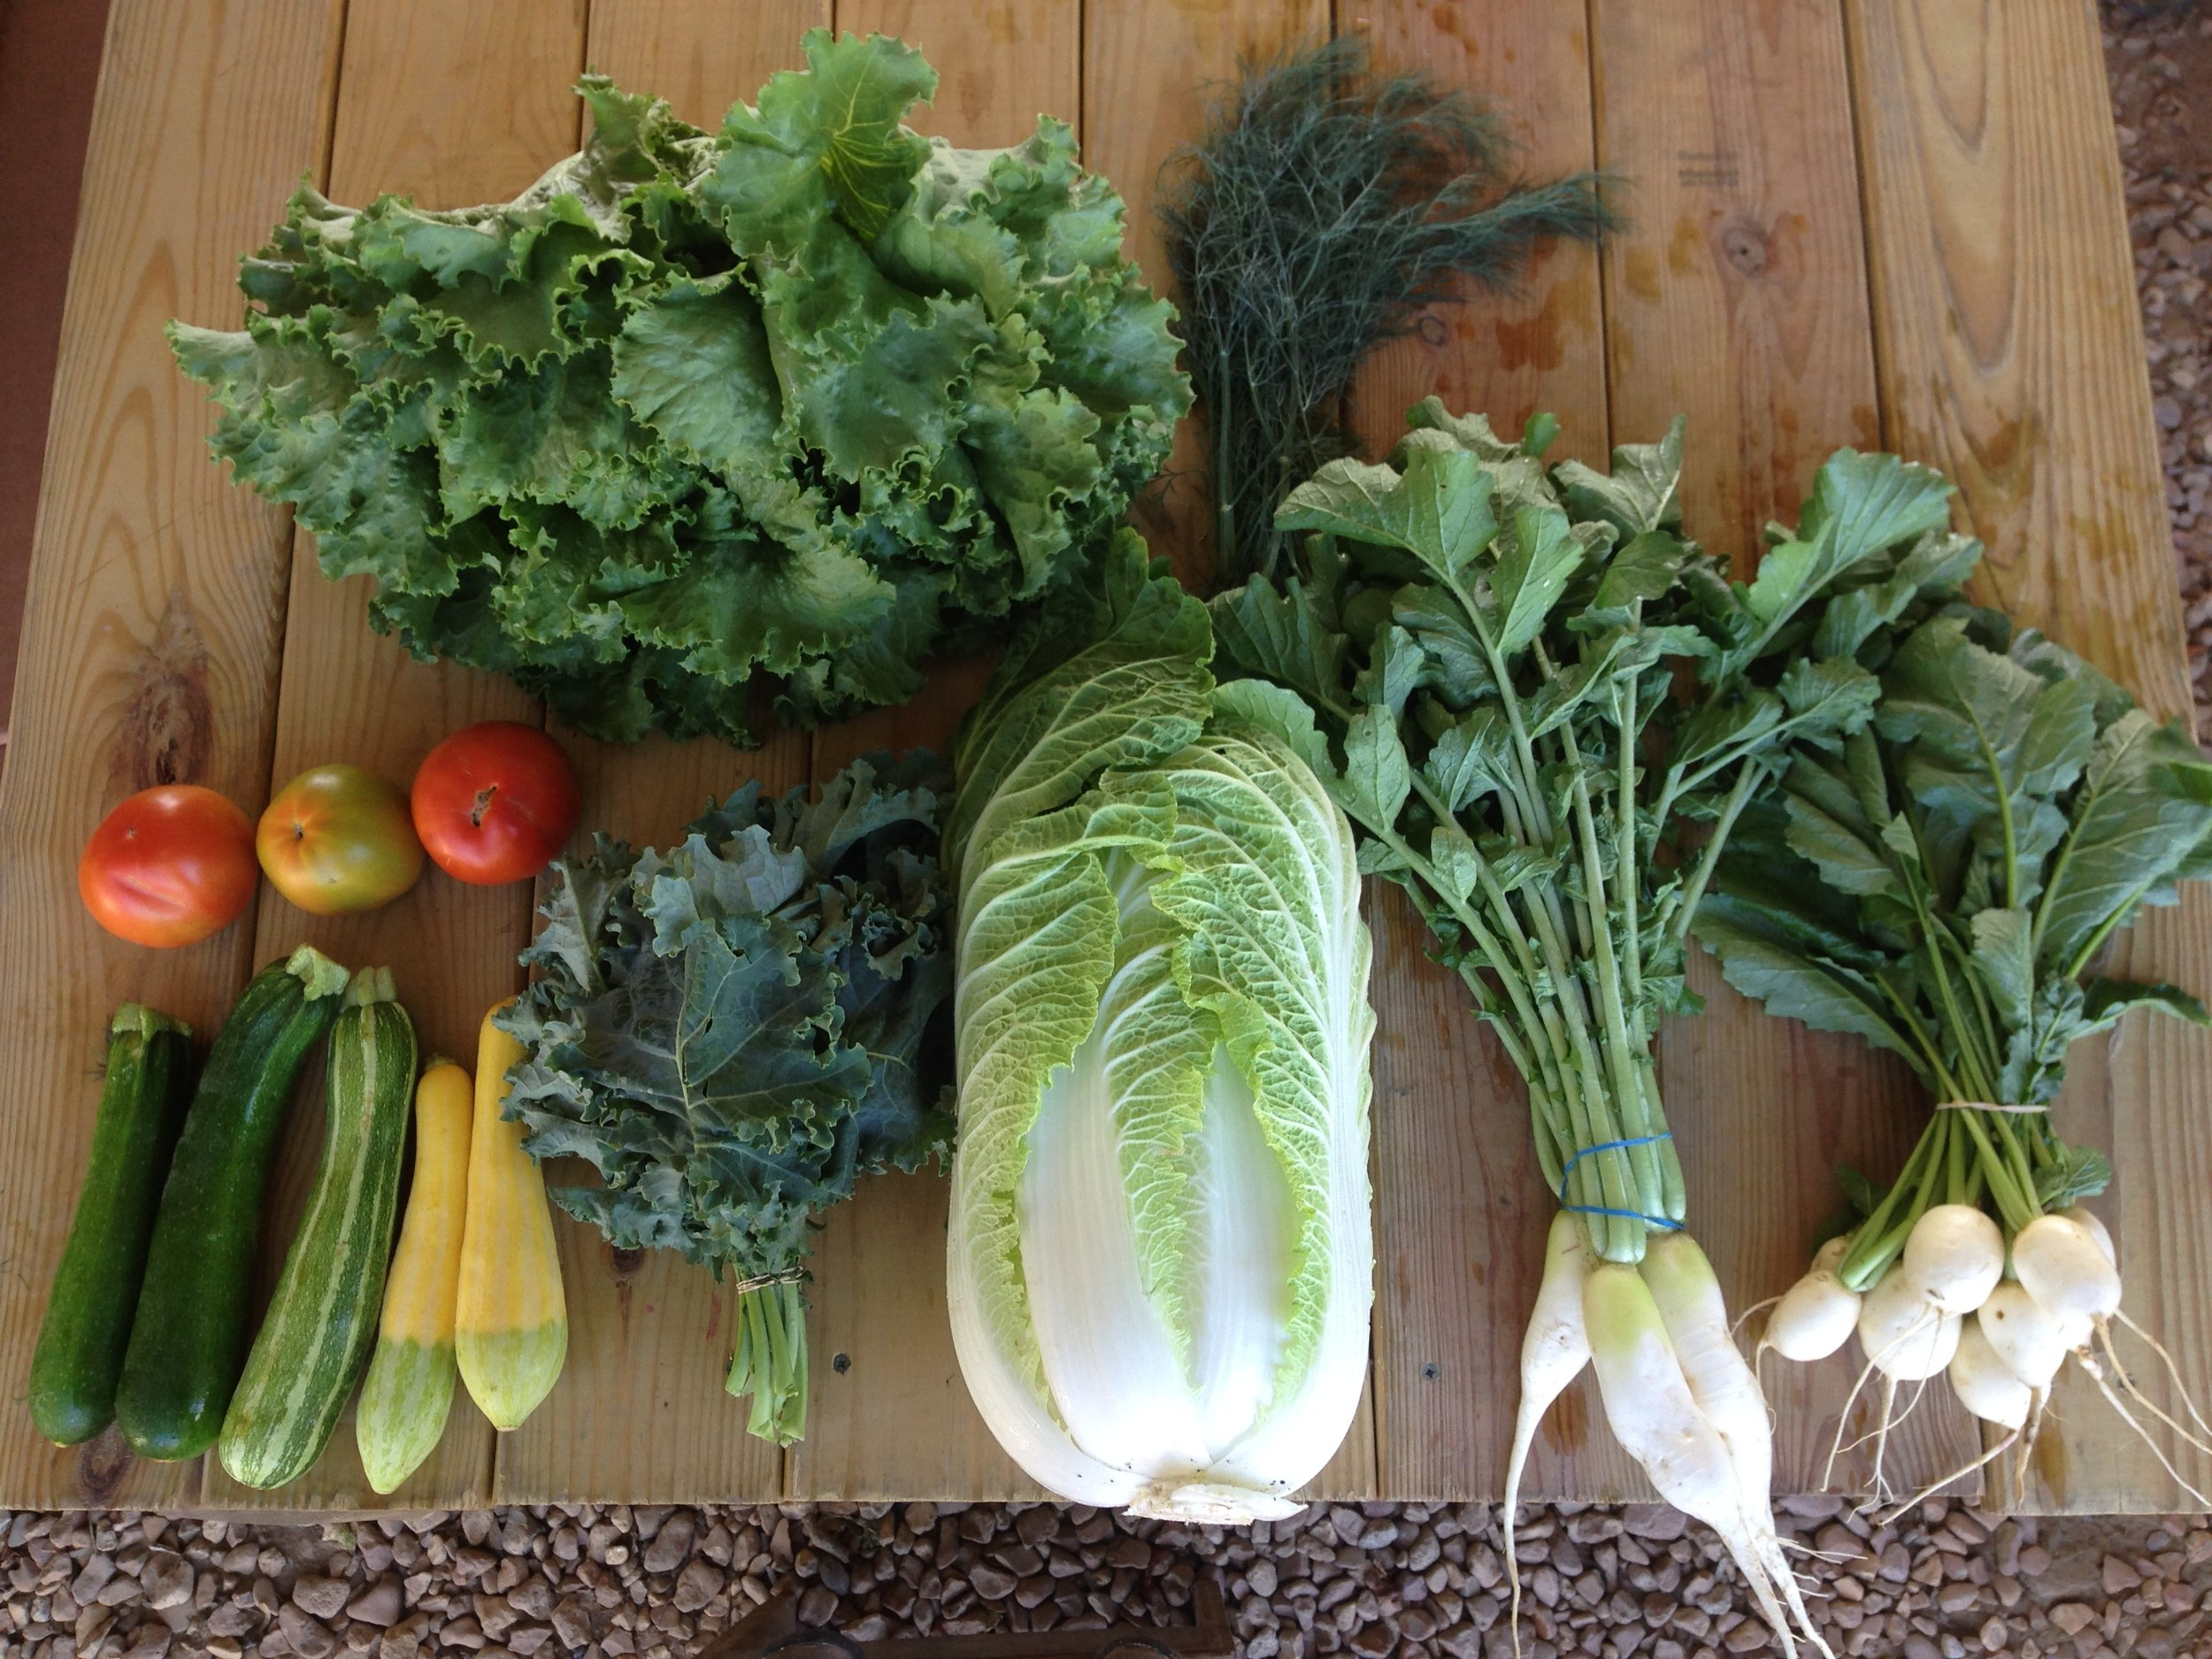 Contents of this week's box include: lettuce, dill. Next row tomatoes, zucchini, squash, kale, napa cabbage, daikon radishes, and hakurei turnips.